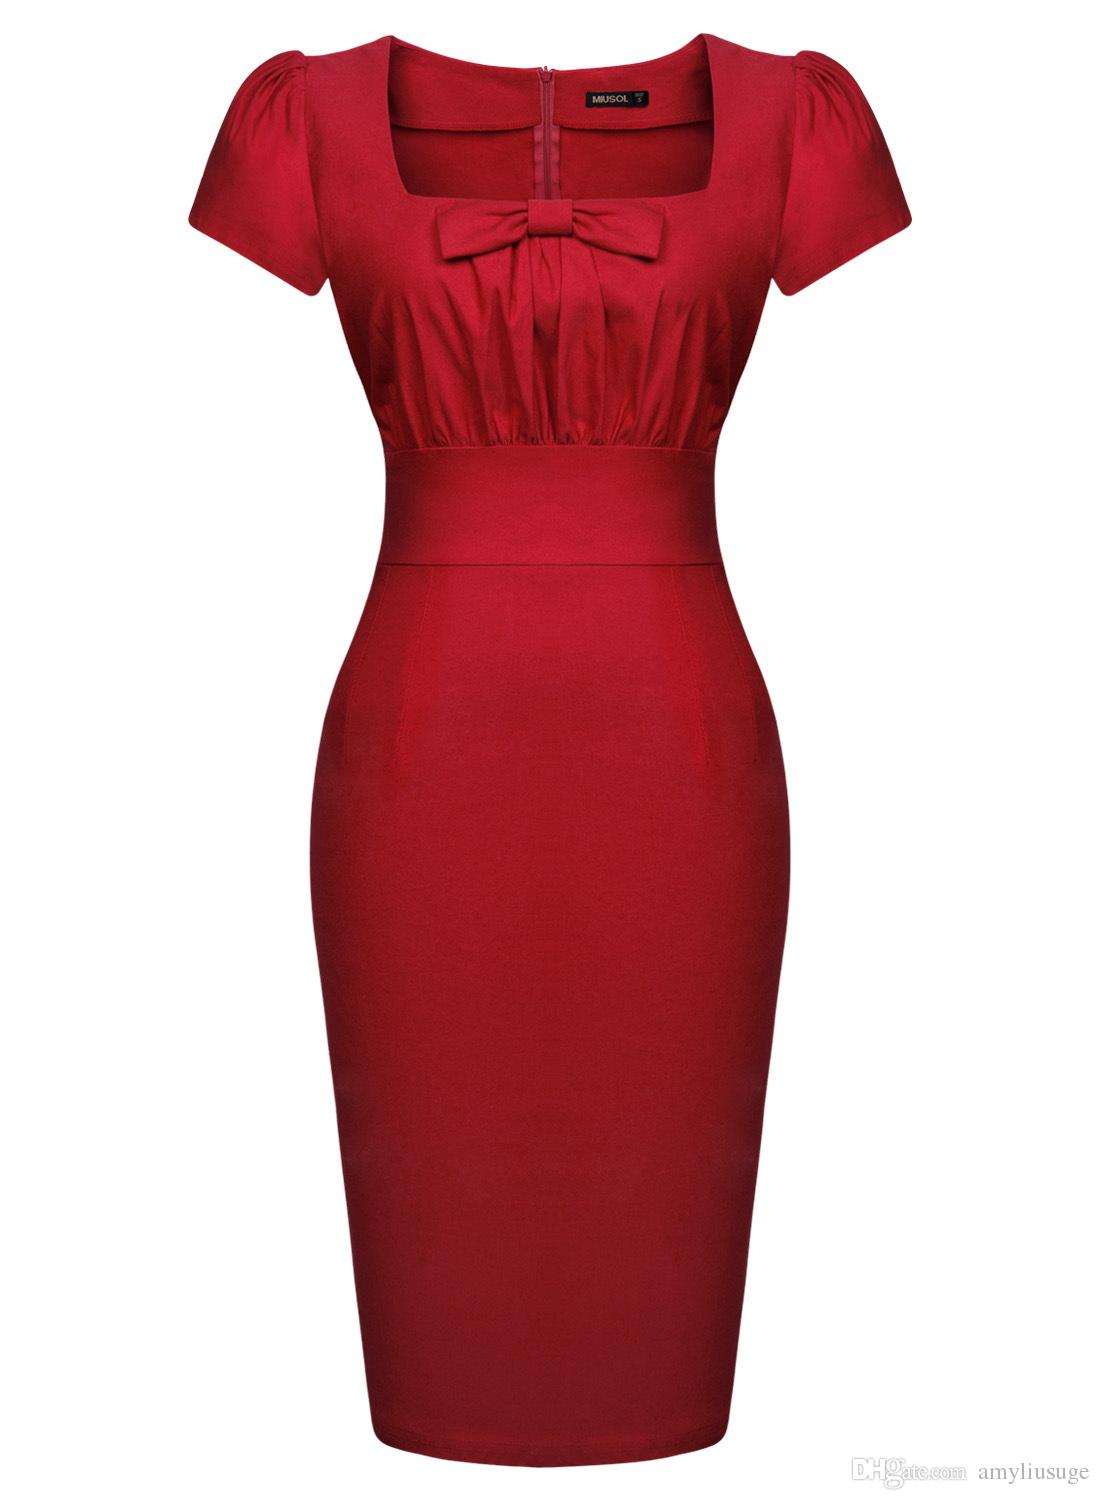 Women's Vintage Retro Square Neck 1940's Fitted Pencil Bodycon Slim Work Party Dresses Cocktail Party dress 3210